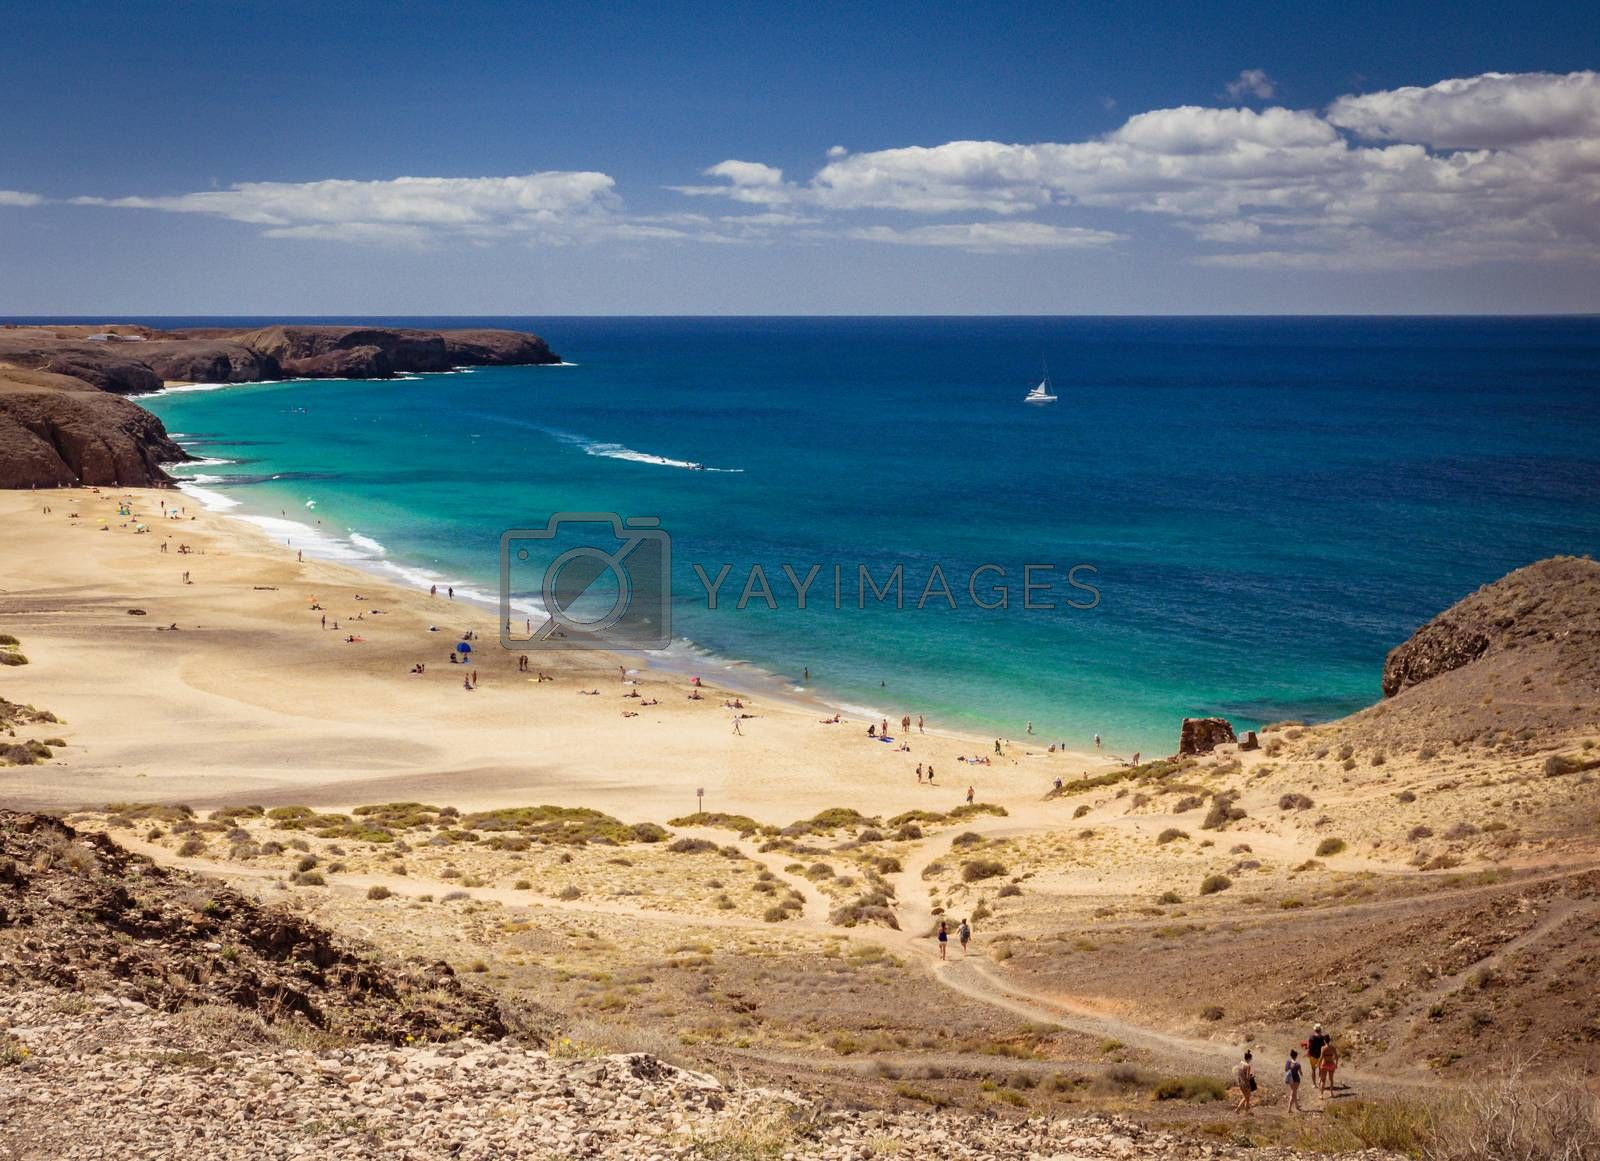 Royalty free image of Playa Mujeres in Lanzarote by pawopa3336